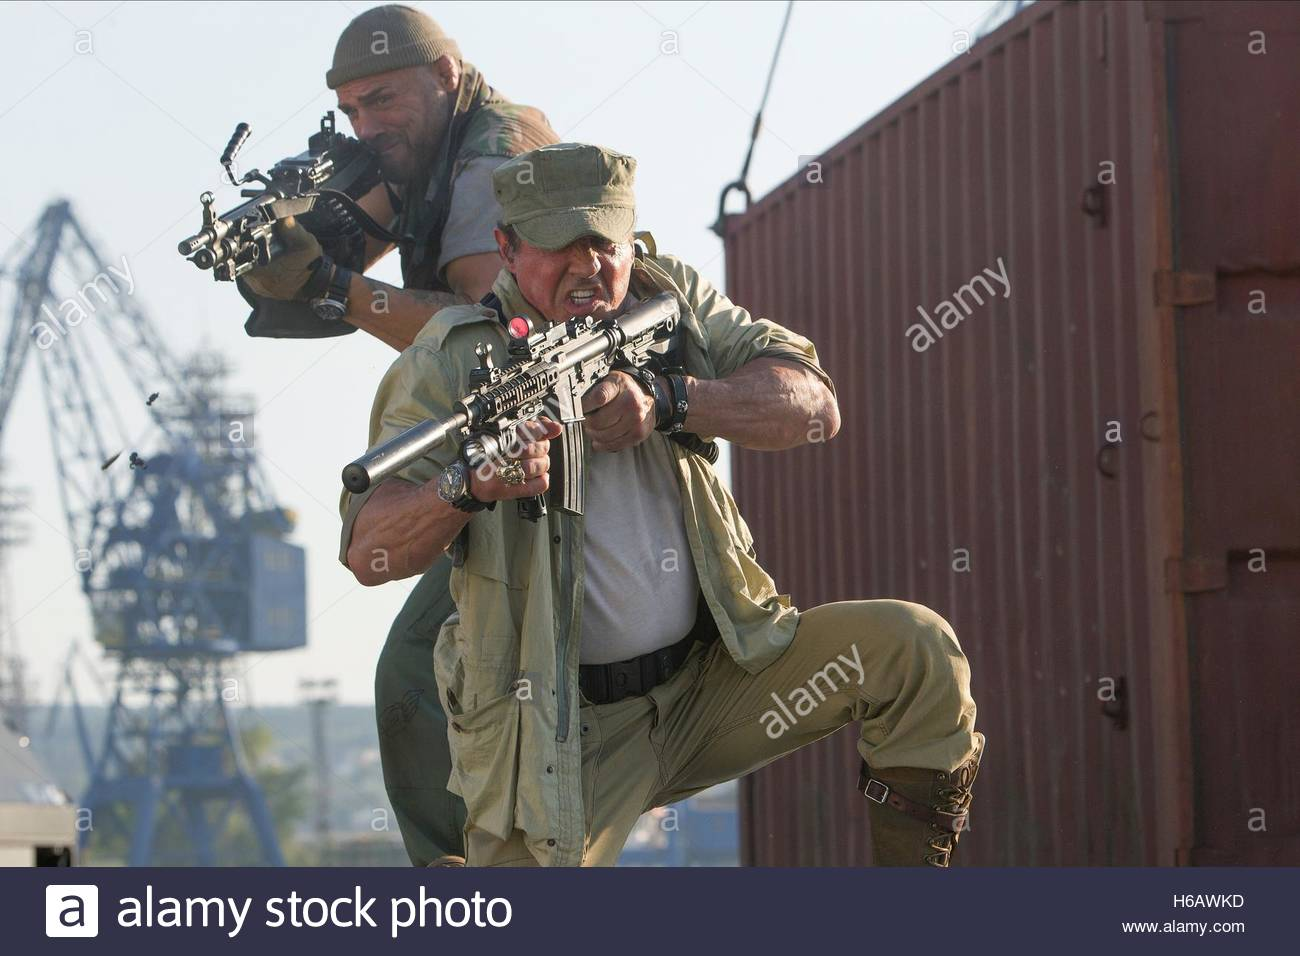 RANDY COUTURE & SYLVESTER STALLONE THE EXPENDABLES 3 (2014) - Stock Image